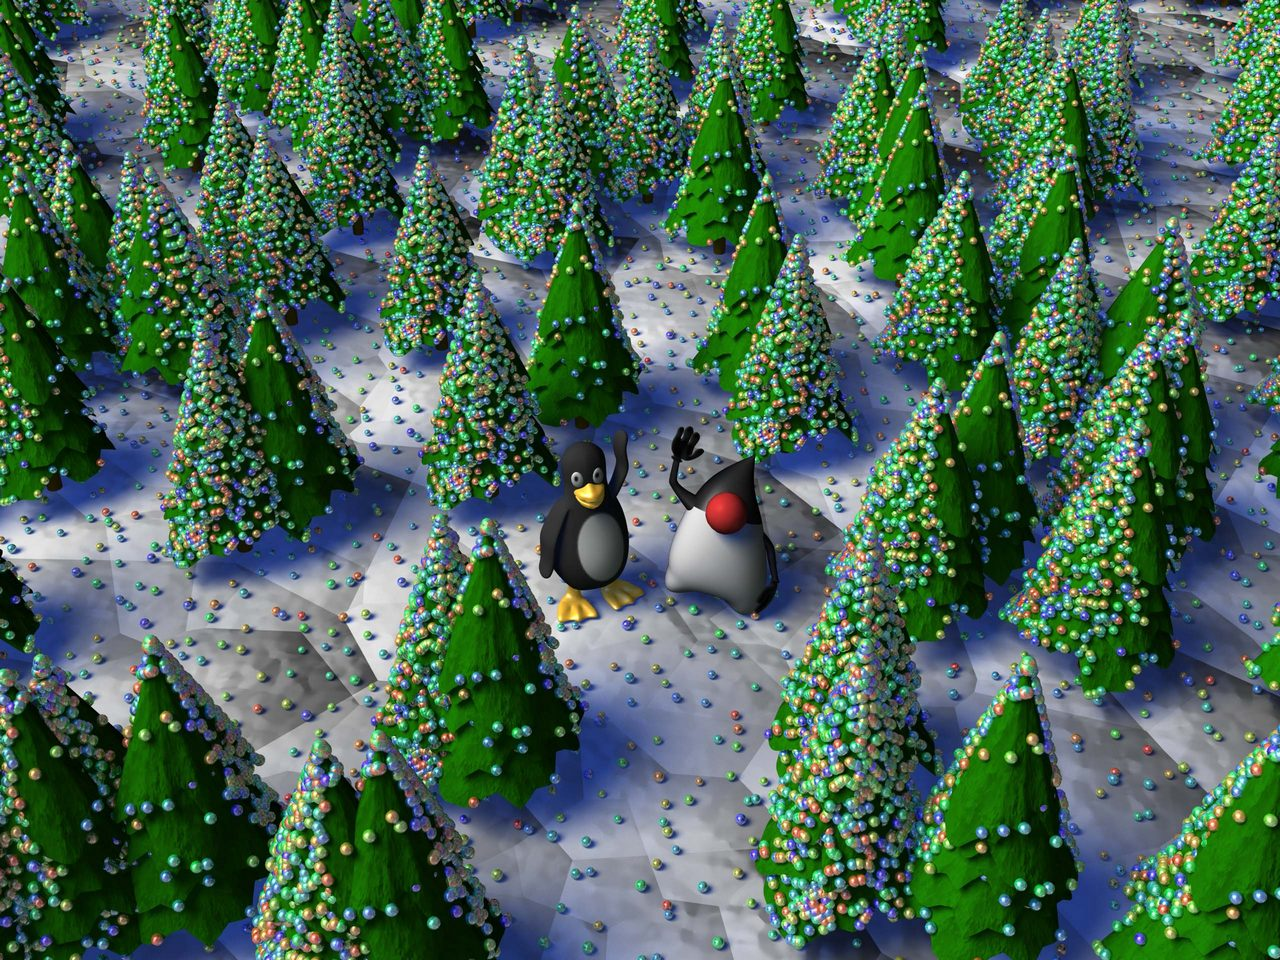 christmas computer wallpaper, christmas wallpapers for computers, nightmare before christmas desktop wallpapers, christmas computer desktop wallpaper free